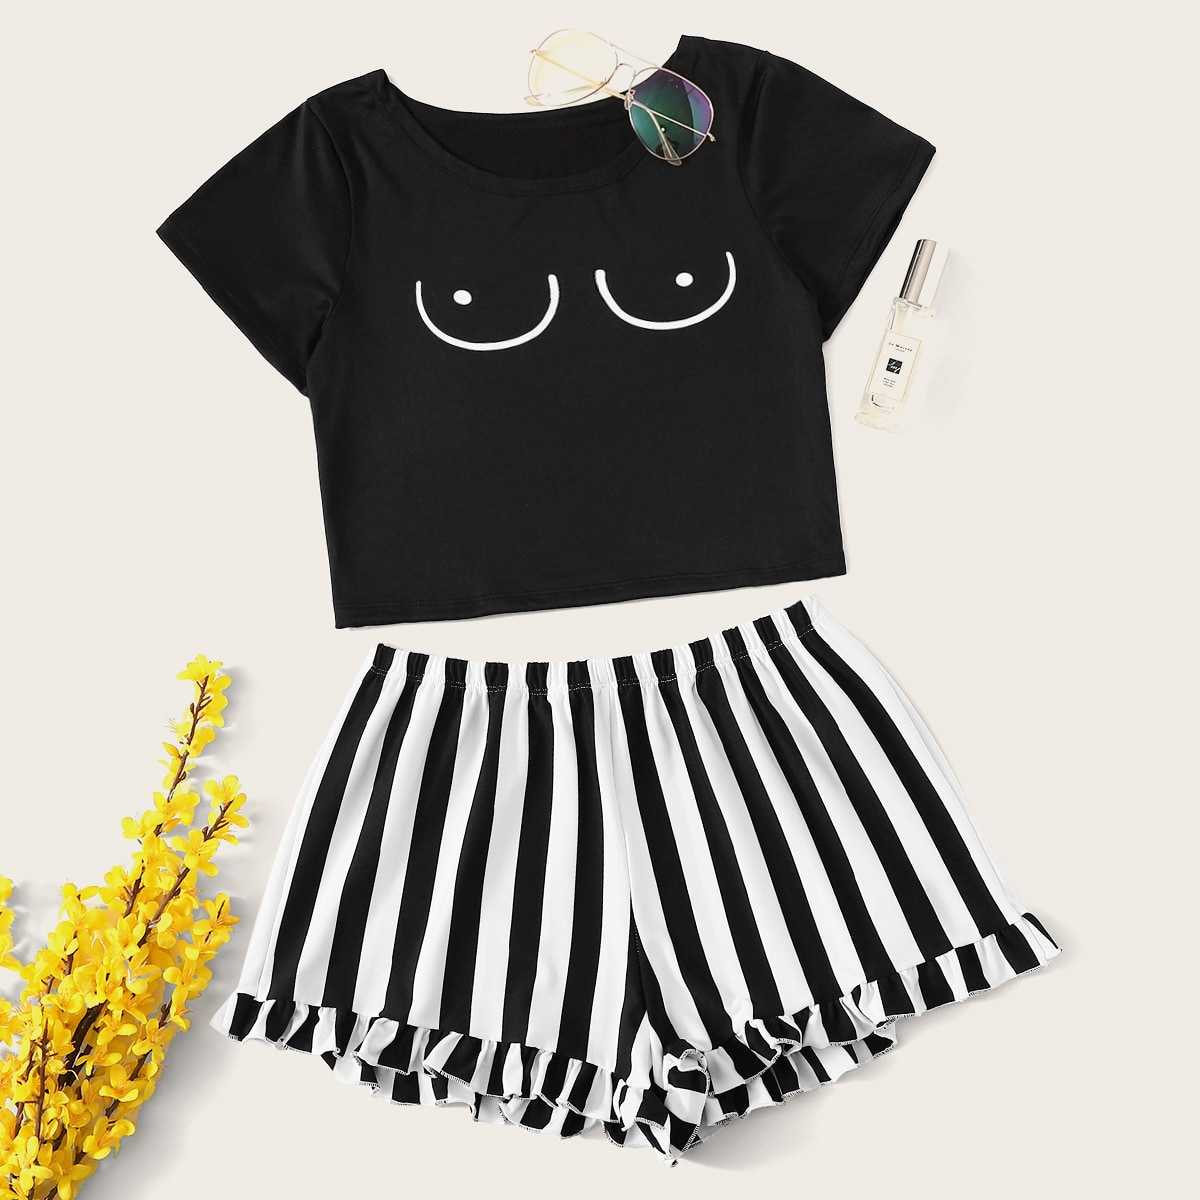 Graphic Print Top With Striped Shorts PJ Set in Black and White by ROMWE on GOOFASH